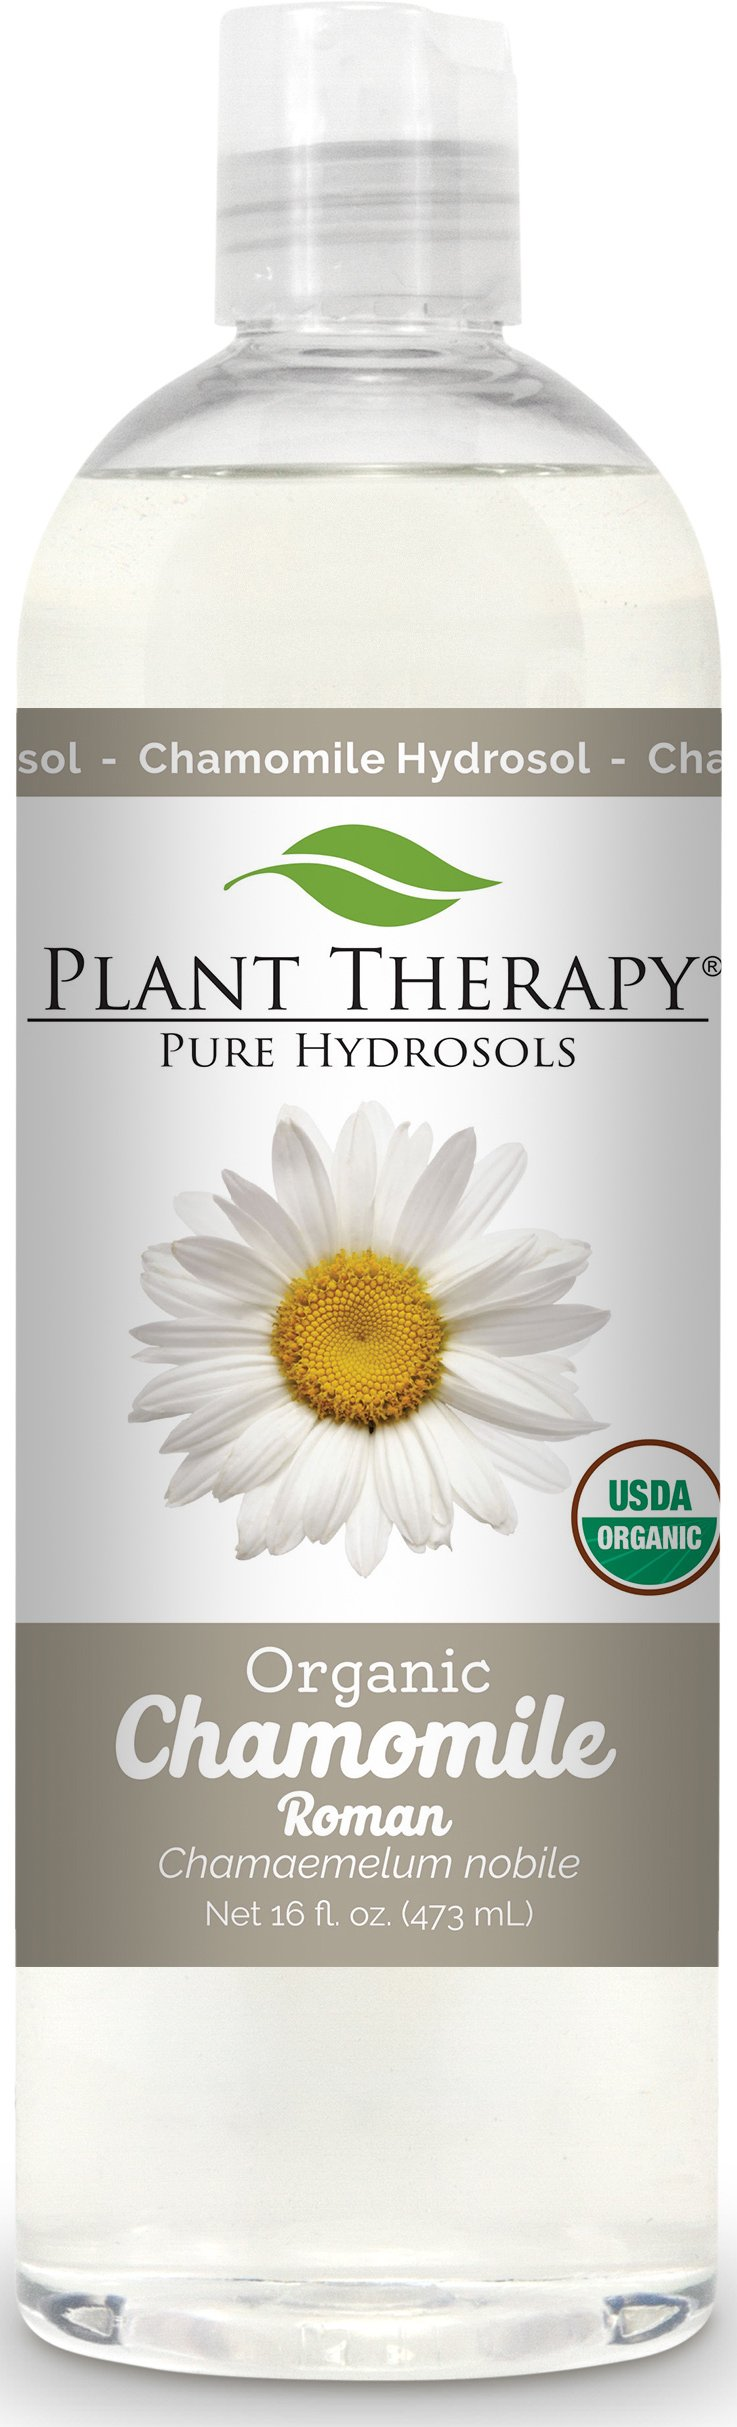 Plant Therapy Chamomile Roman Organic Hydrosol 16 oz By-Product of Essential Oils by Plant Therapy